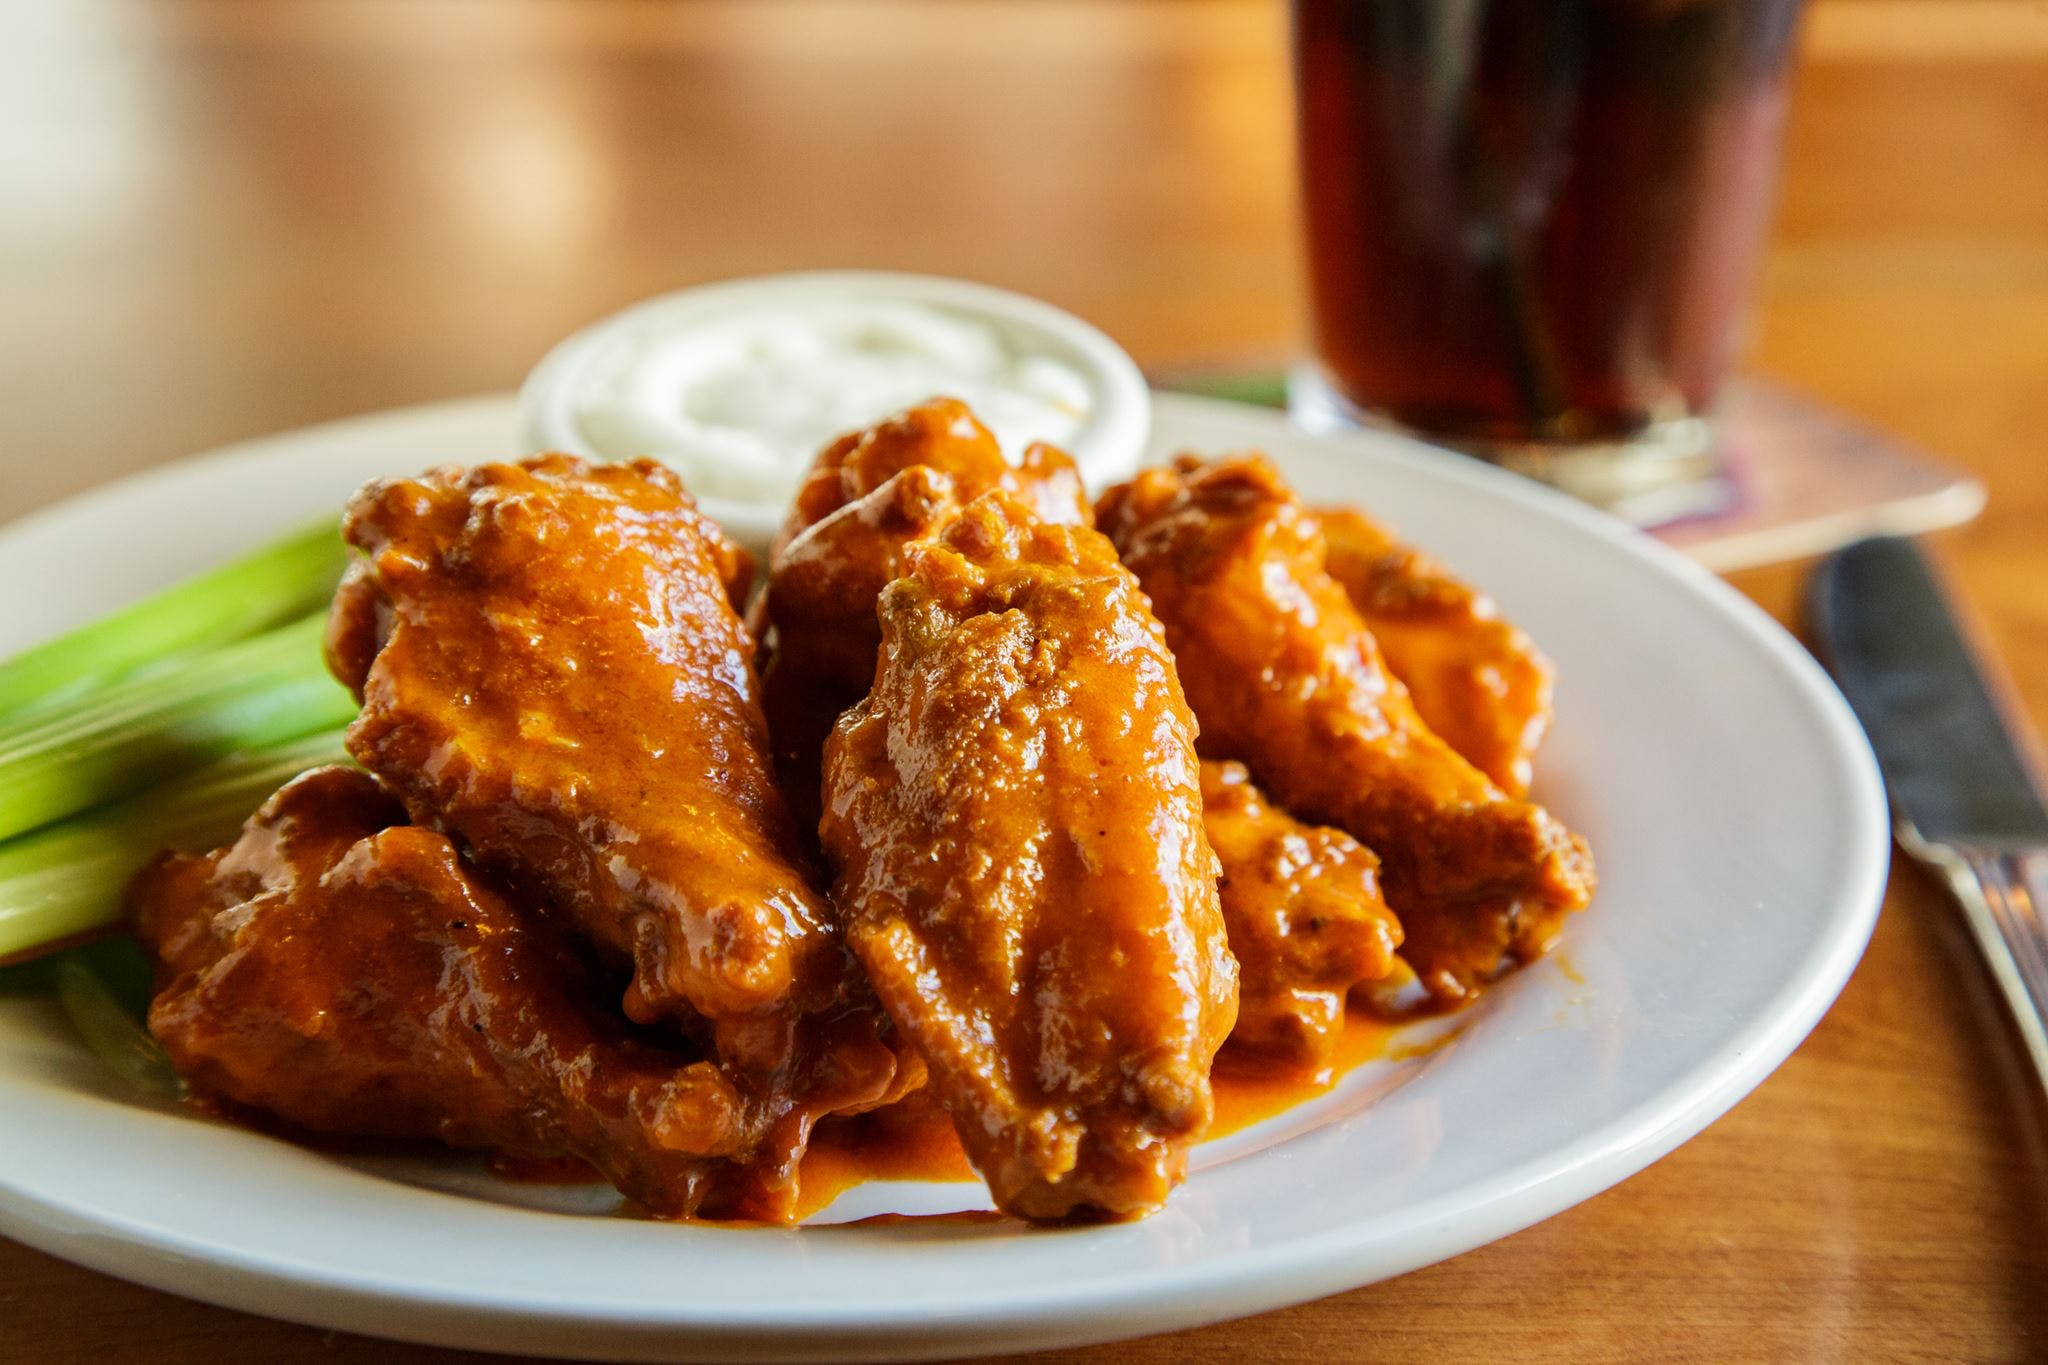 Hot Wings from Argus Bar & Grill in Madison, WI